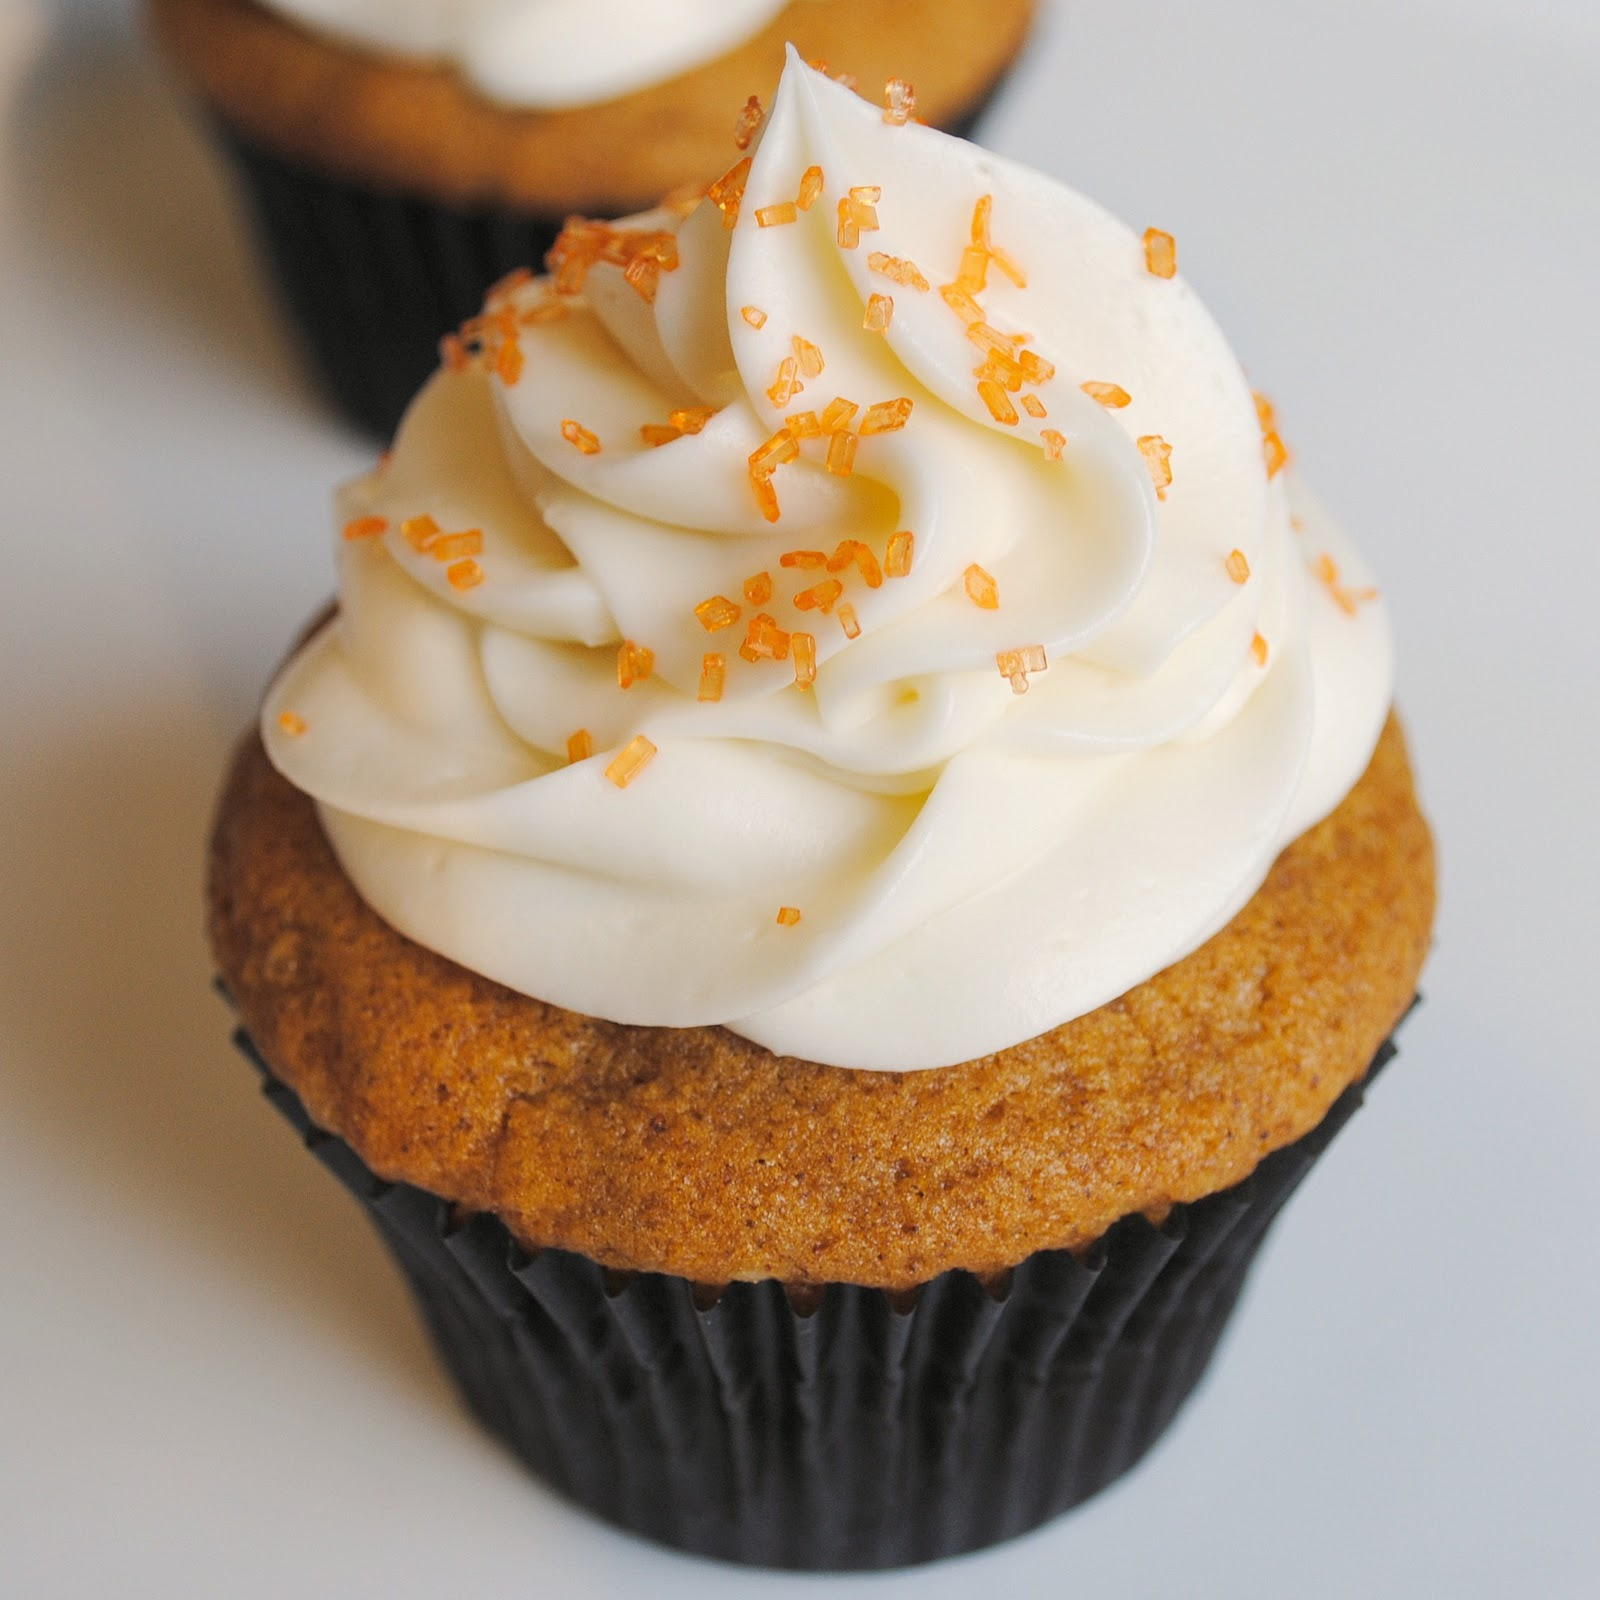 Homemade By Holman: A Fall Favorite: Pumpkin Cupcakes